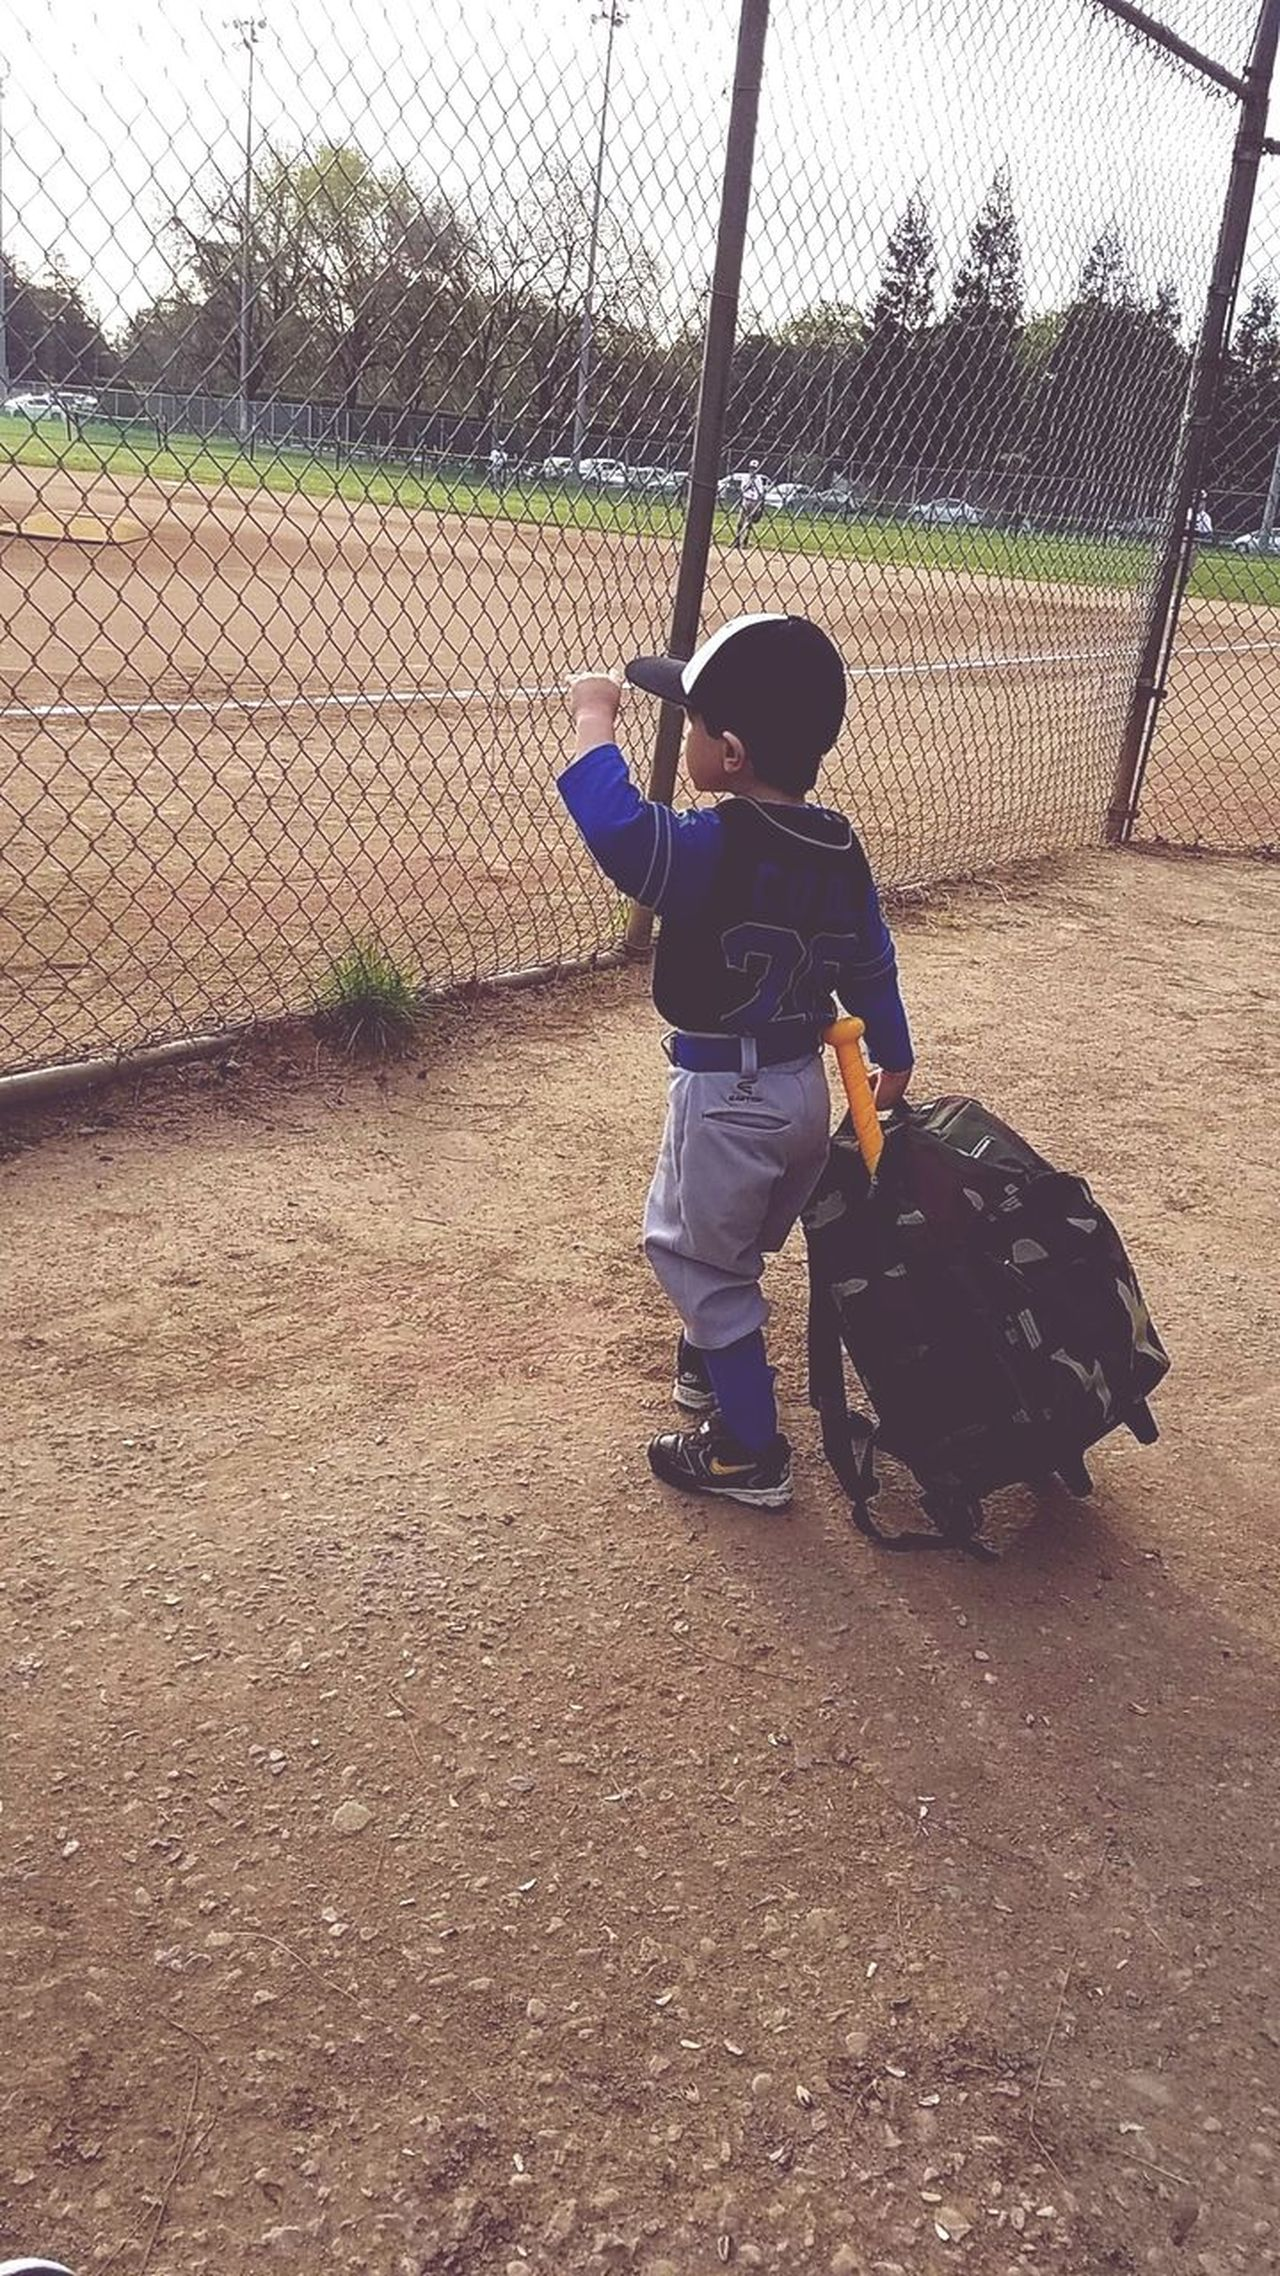 Paying Respect to the game.... Never too young to start Futureballer Childhood Child Boys Baseball - Sport One Boy Only Full Length Children Only Baseball Bat Baseball Helmet Real People One Person Standing Passion